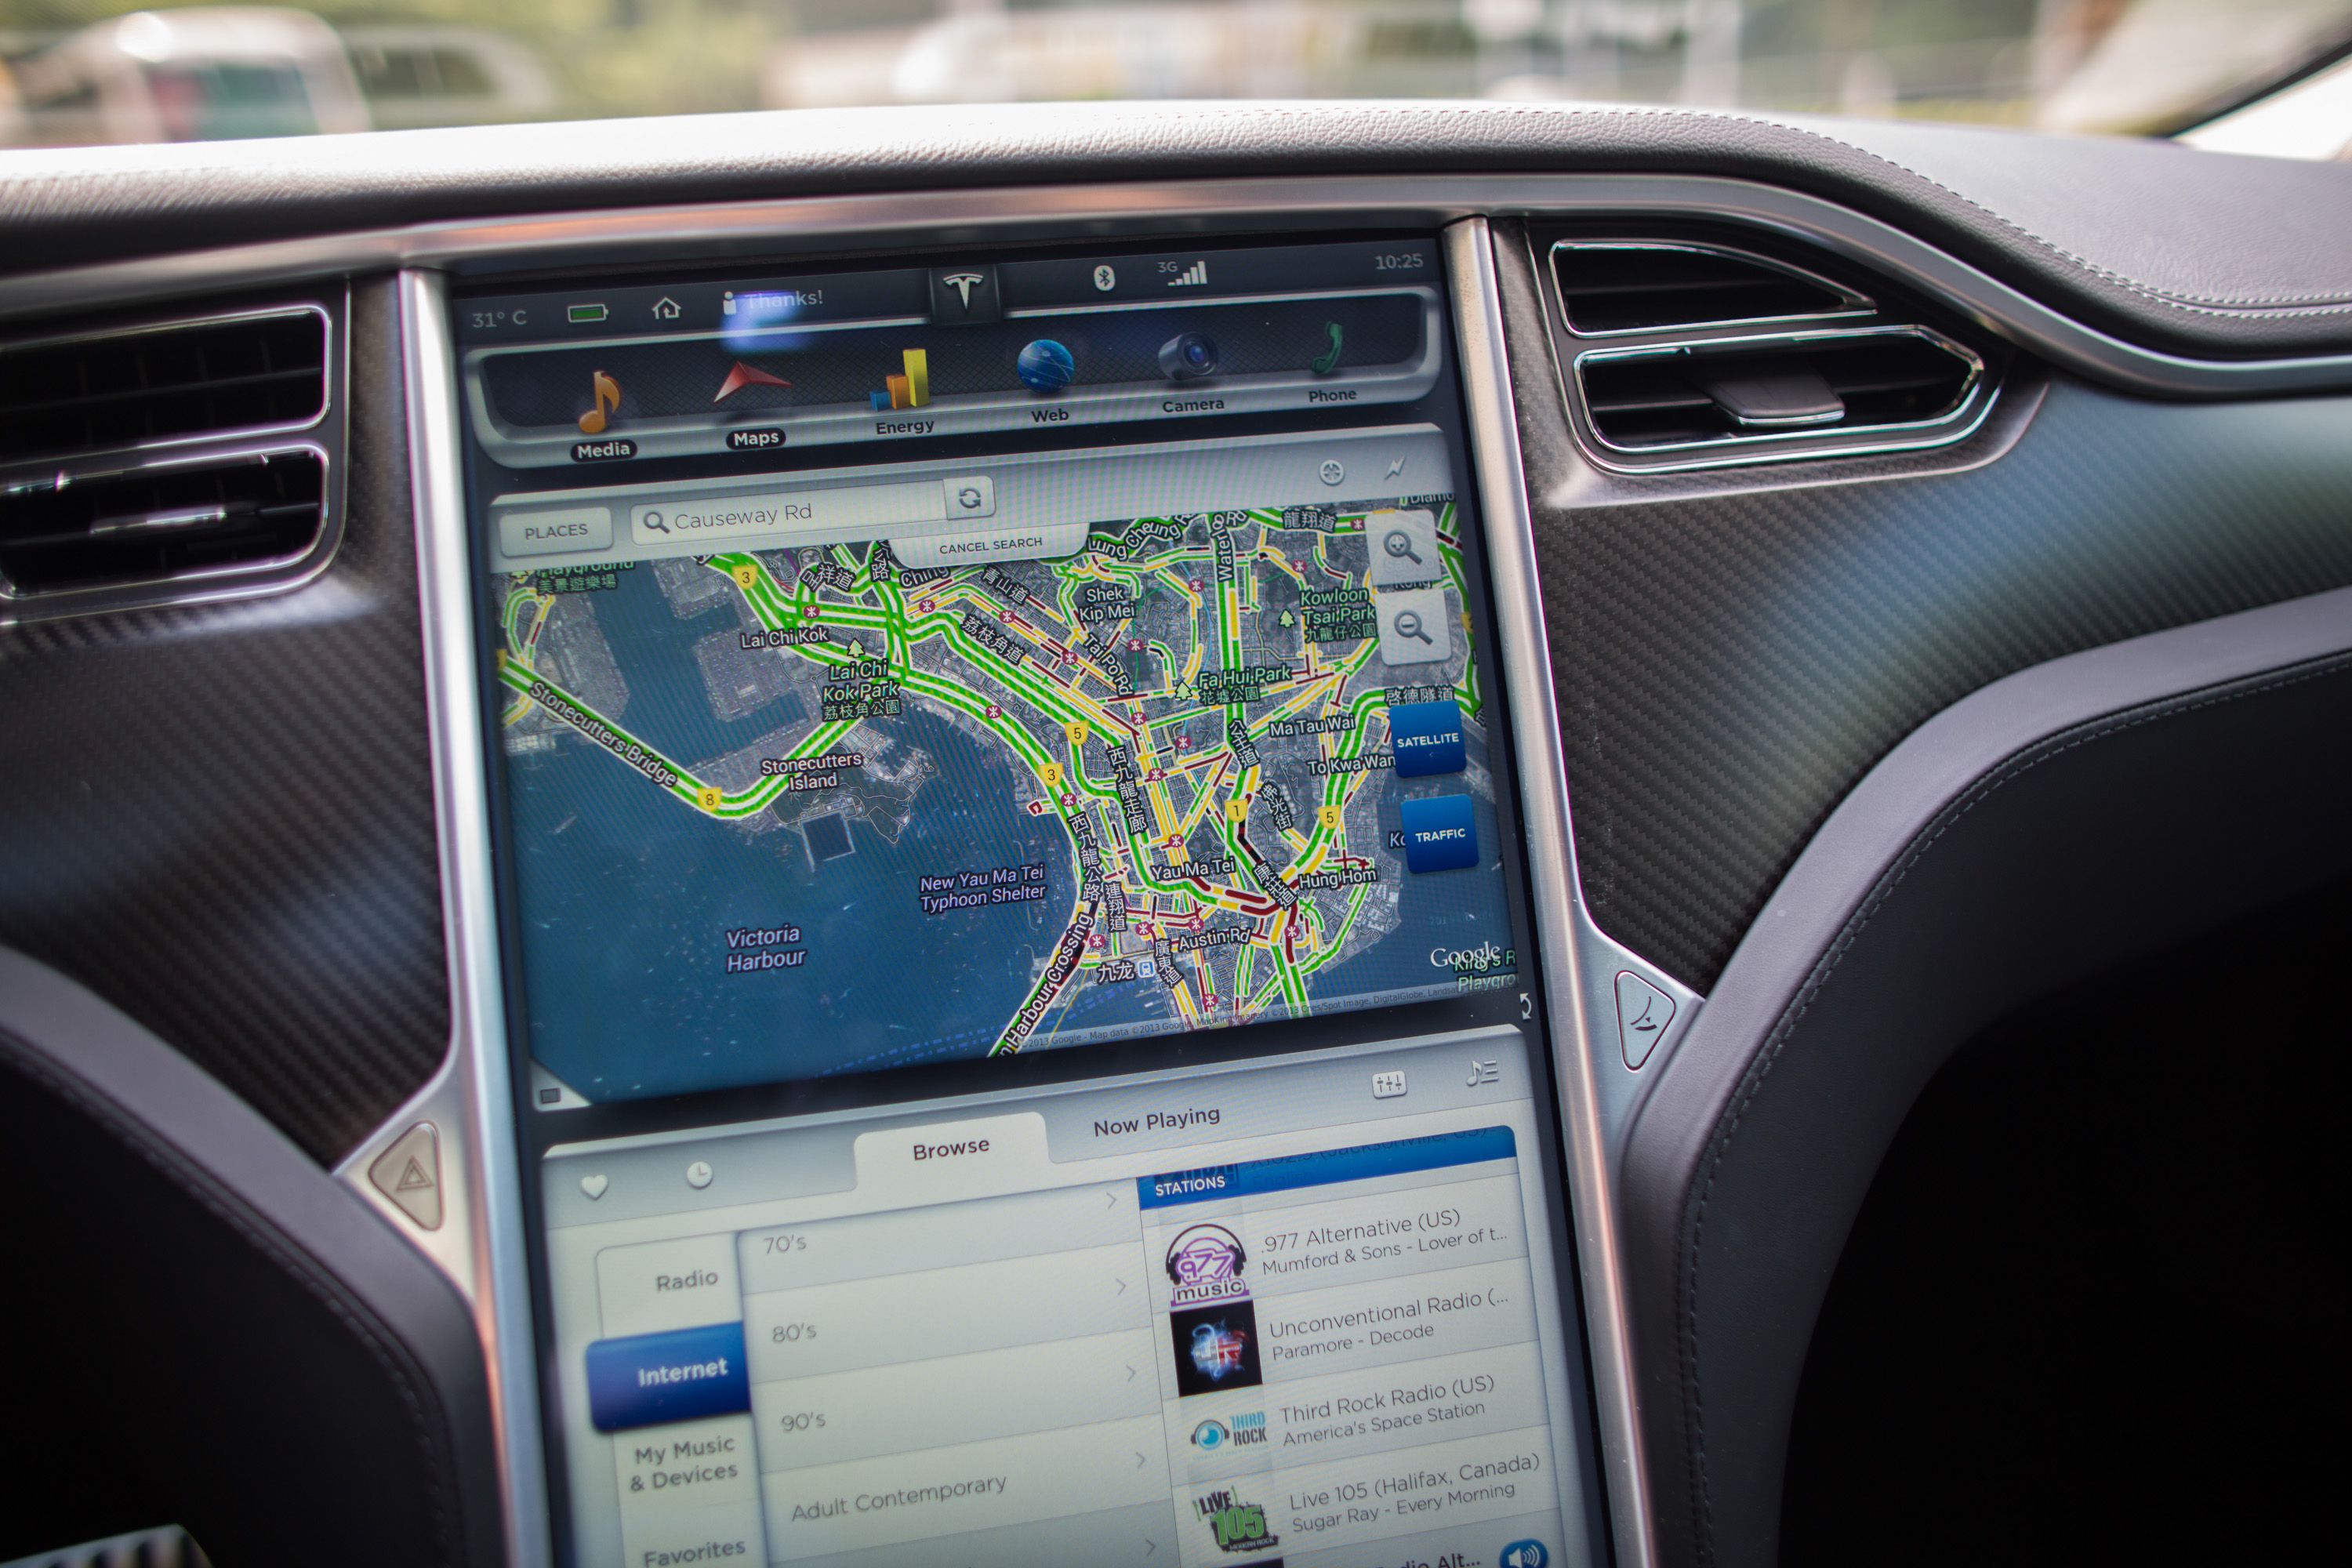 A Google Inc. map is displayed on a screen in a Tesla Motors Inc. Model S sedan electric vehicle (EV) parked in the area of Cyberport in Hong Kong, China, on Friday, July 5, 2013.